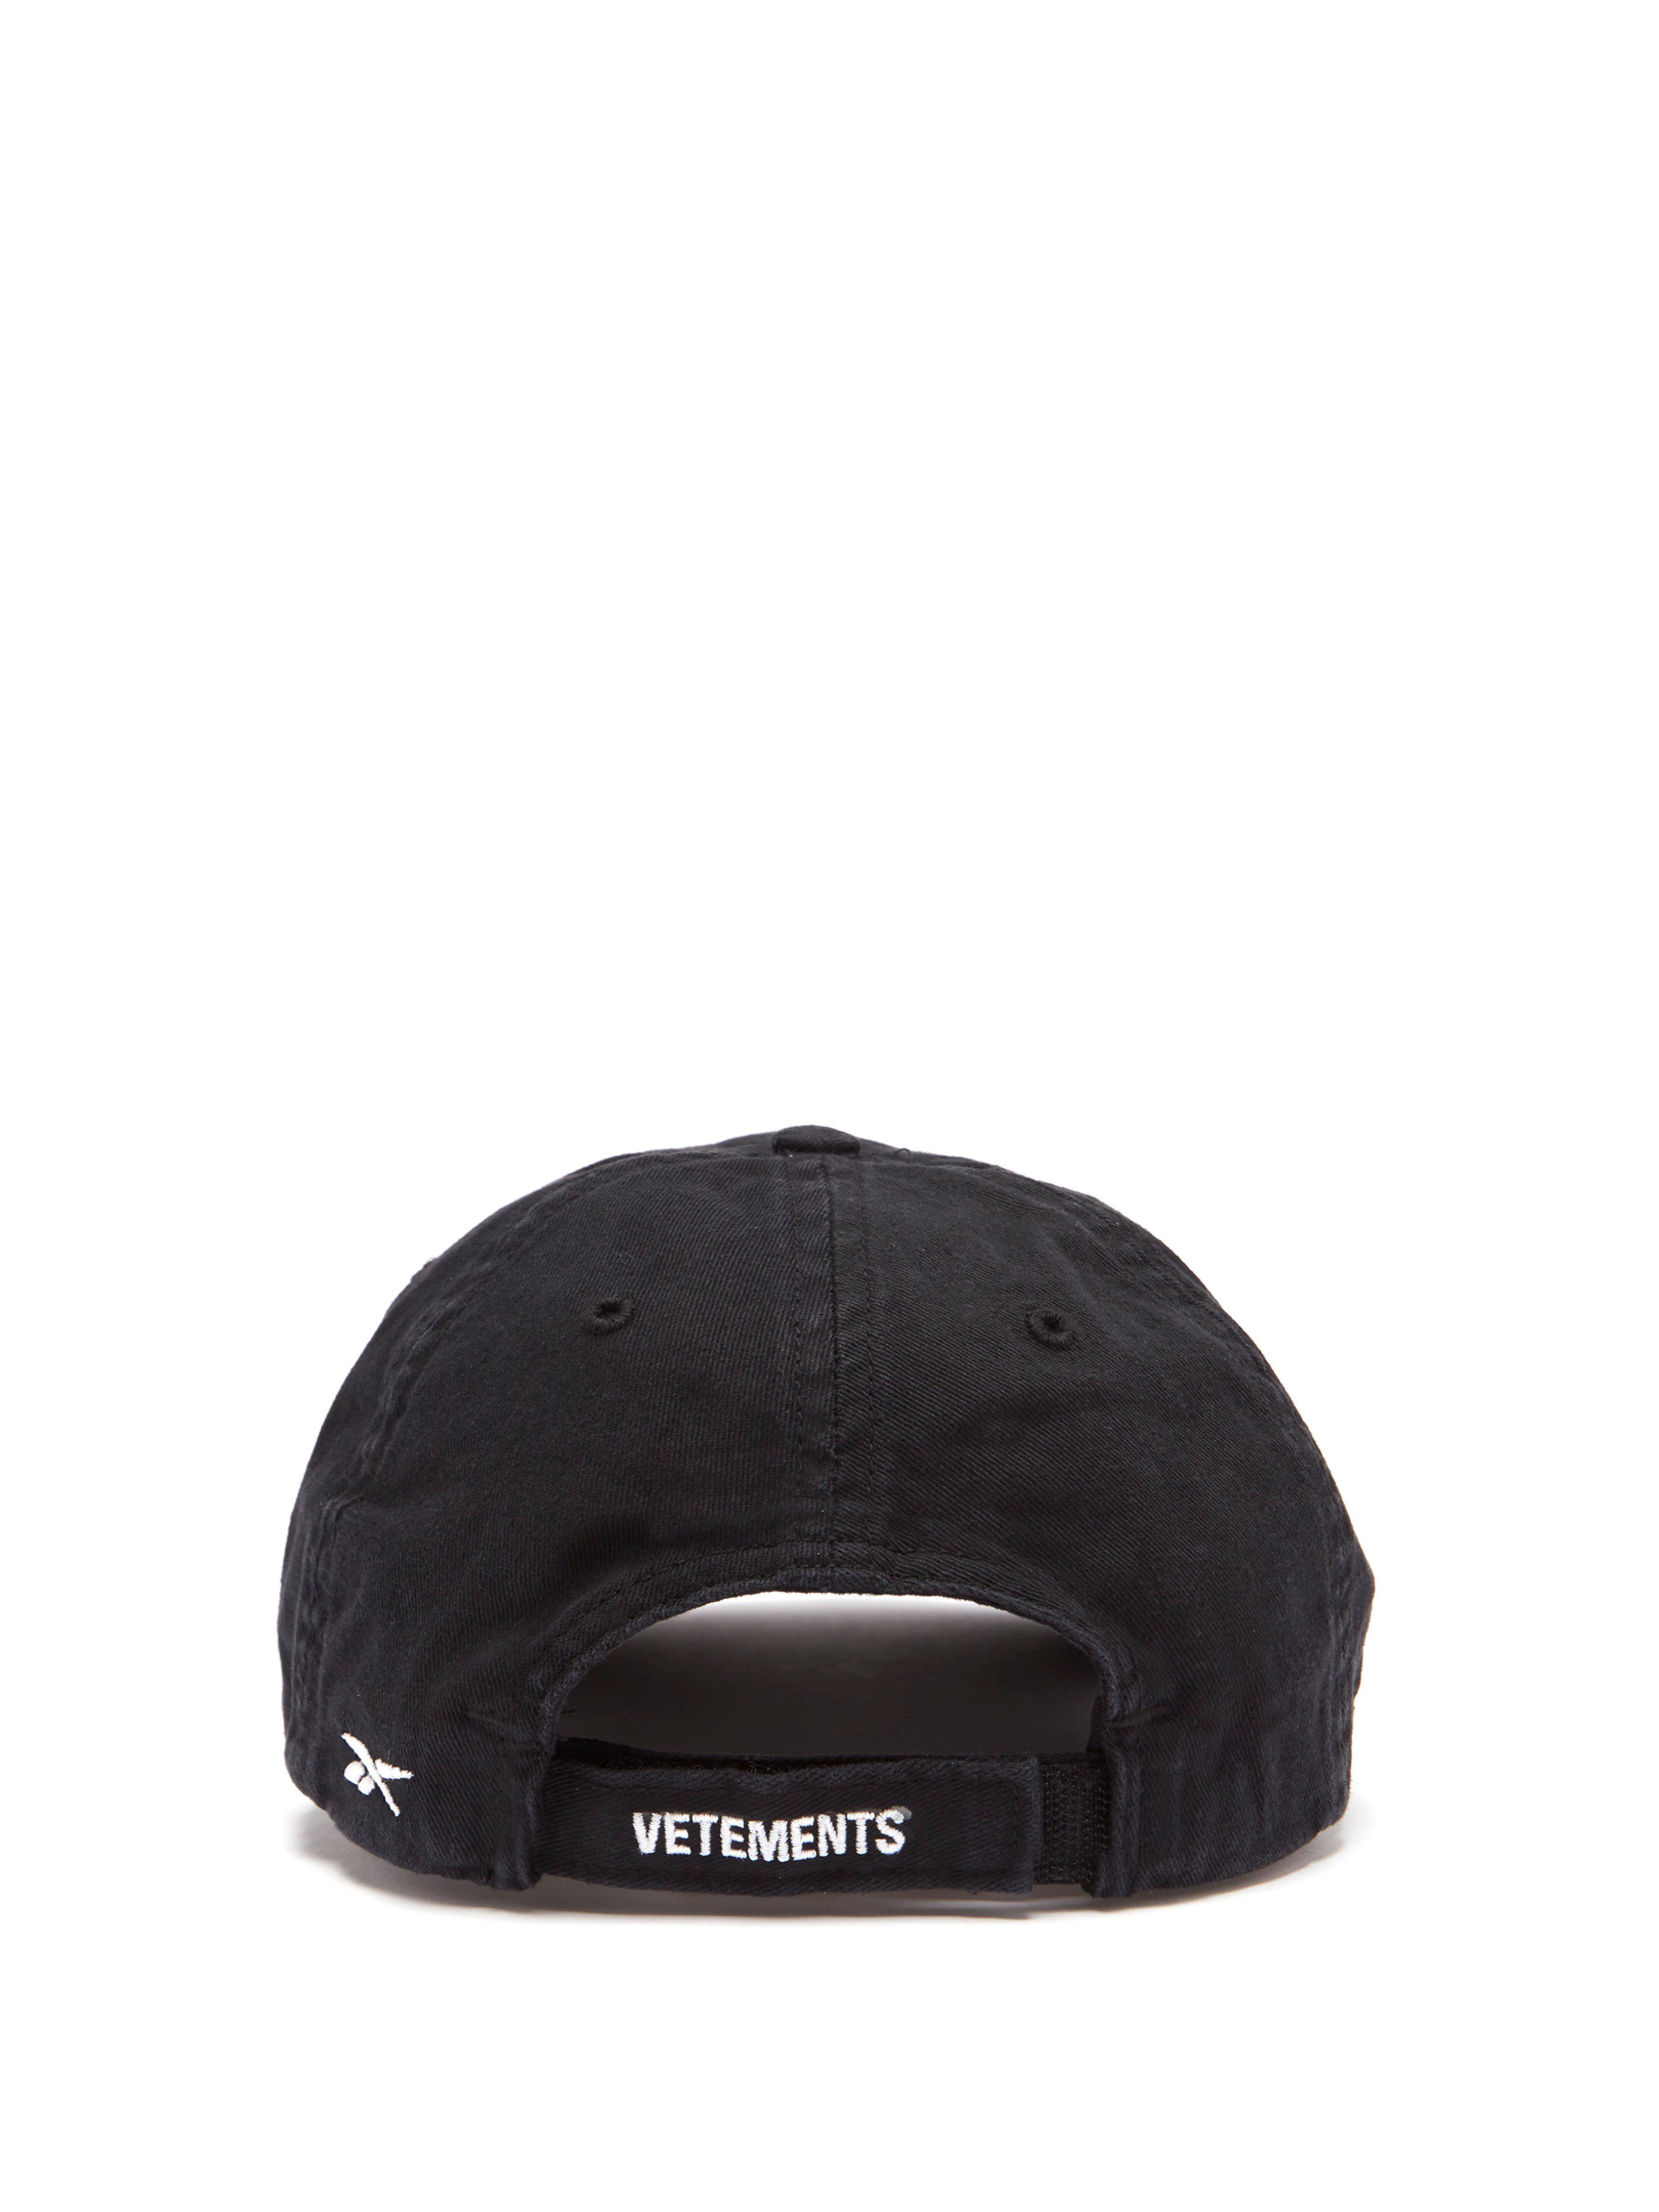 82e4b493402027 Vetements X Reebok Friday Embroidered Cotton Cap in Black - Lyst